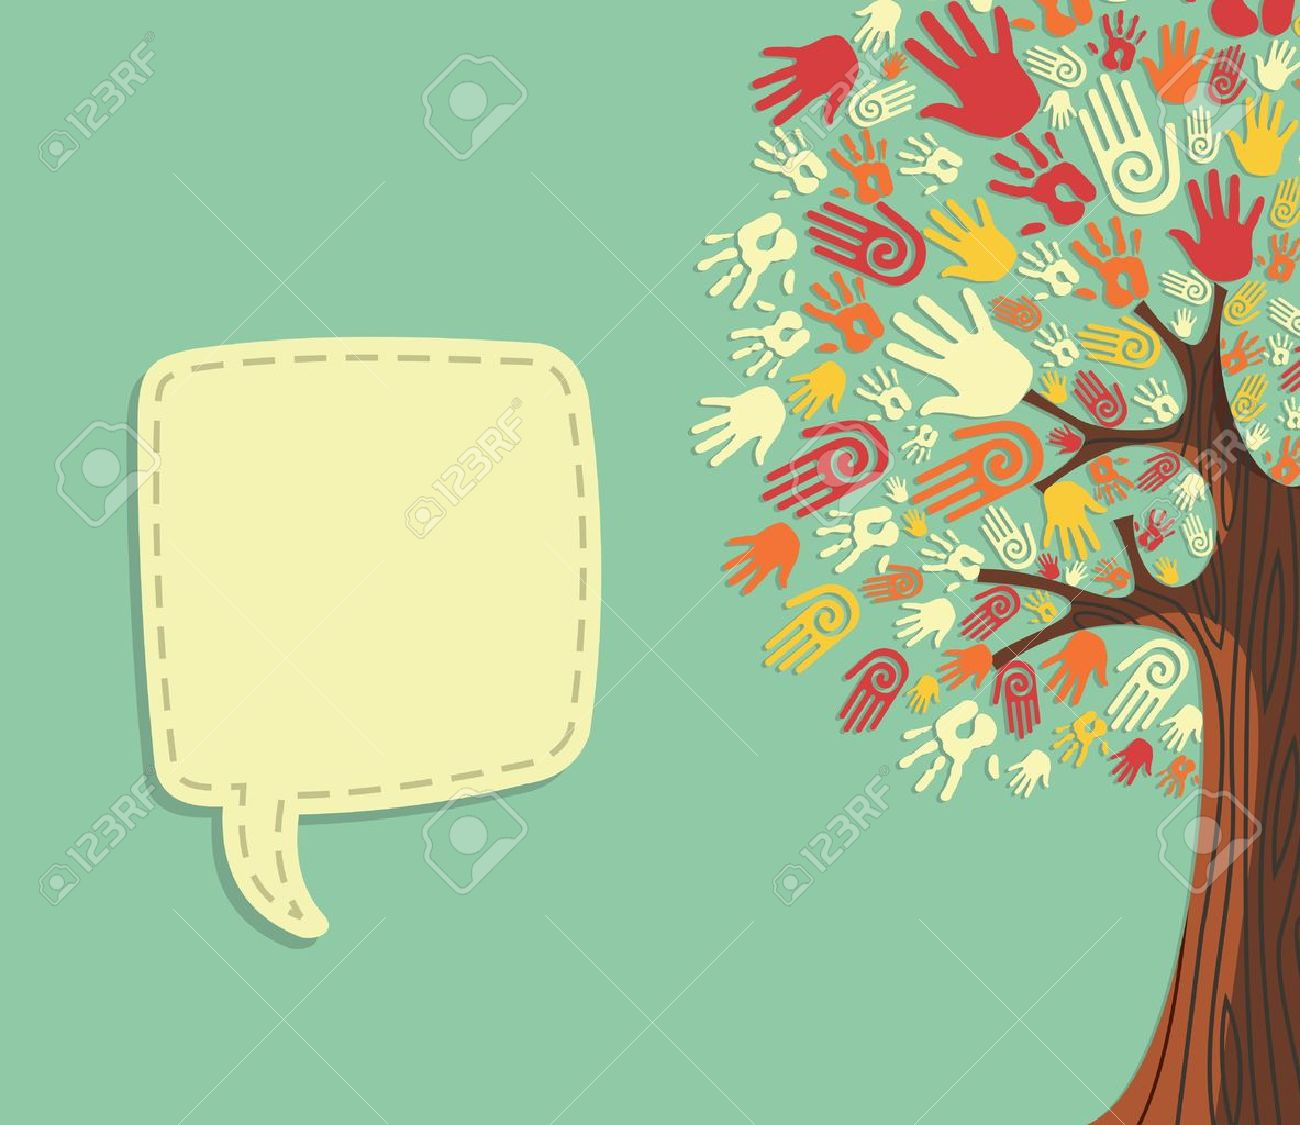 Diversity Tree Hands Illustration With Blank For Text Greeting – Online Greeting Card Template